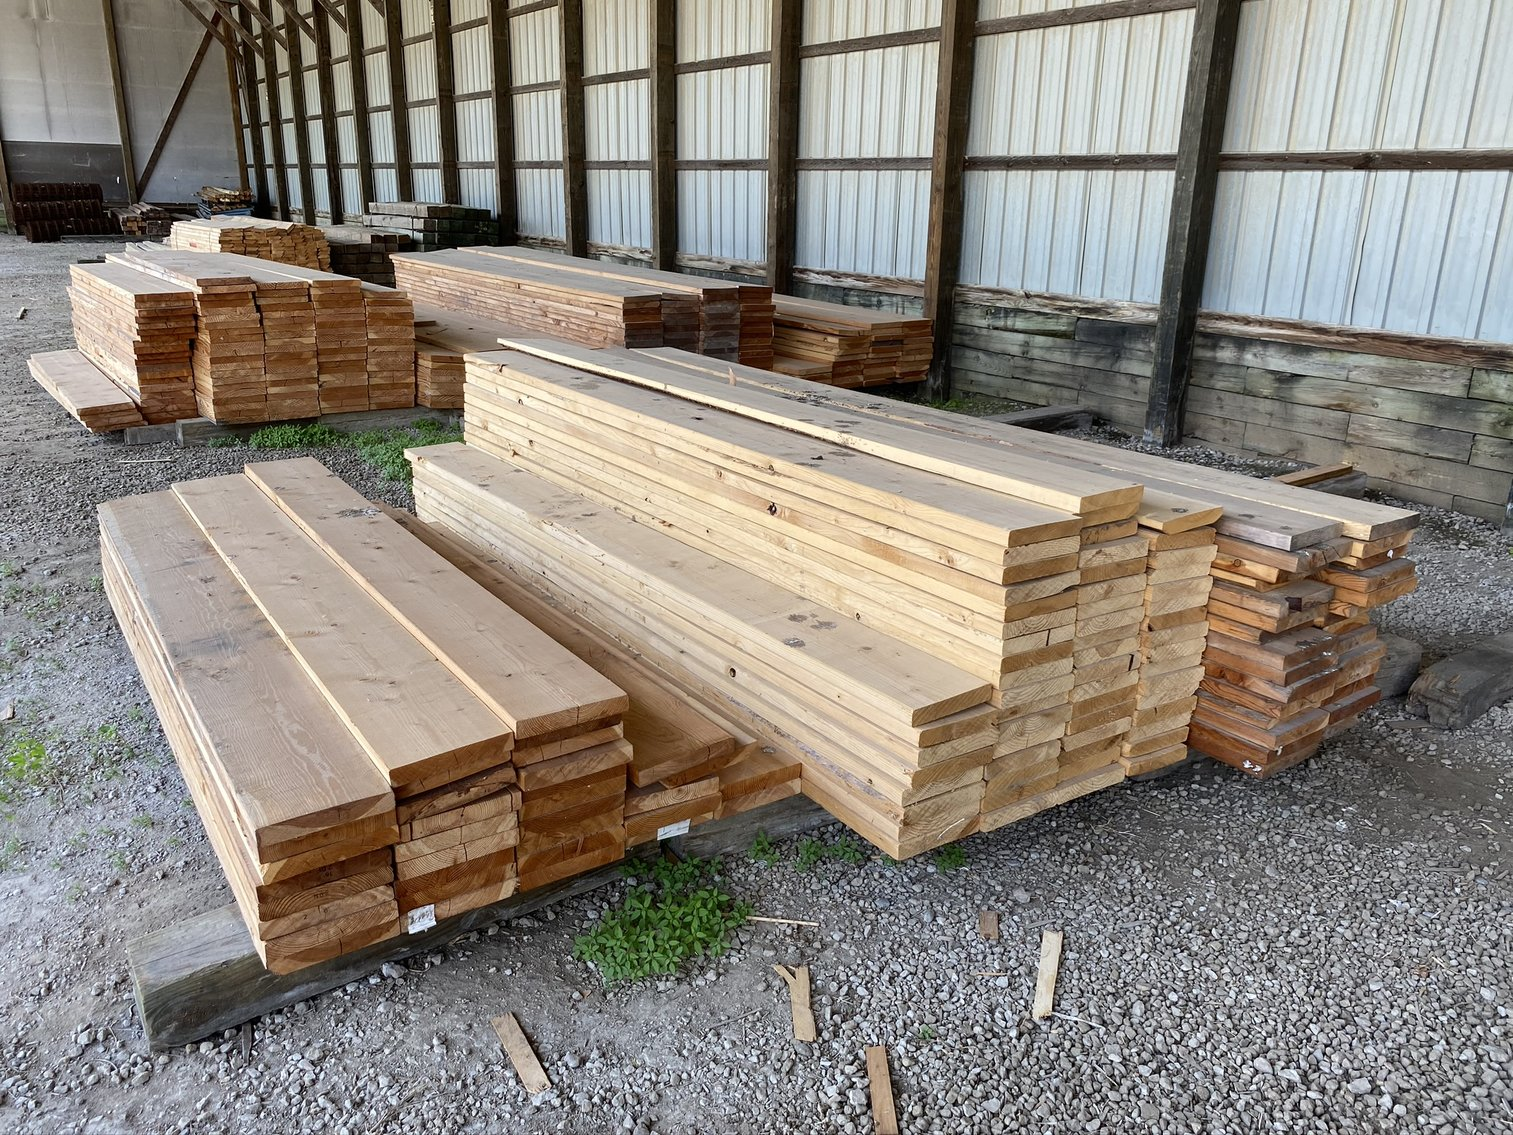 Opening Soon Hiawatha Lumber Closing After 80 Years of Business Complete Liquidation